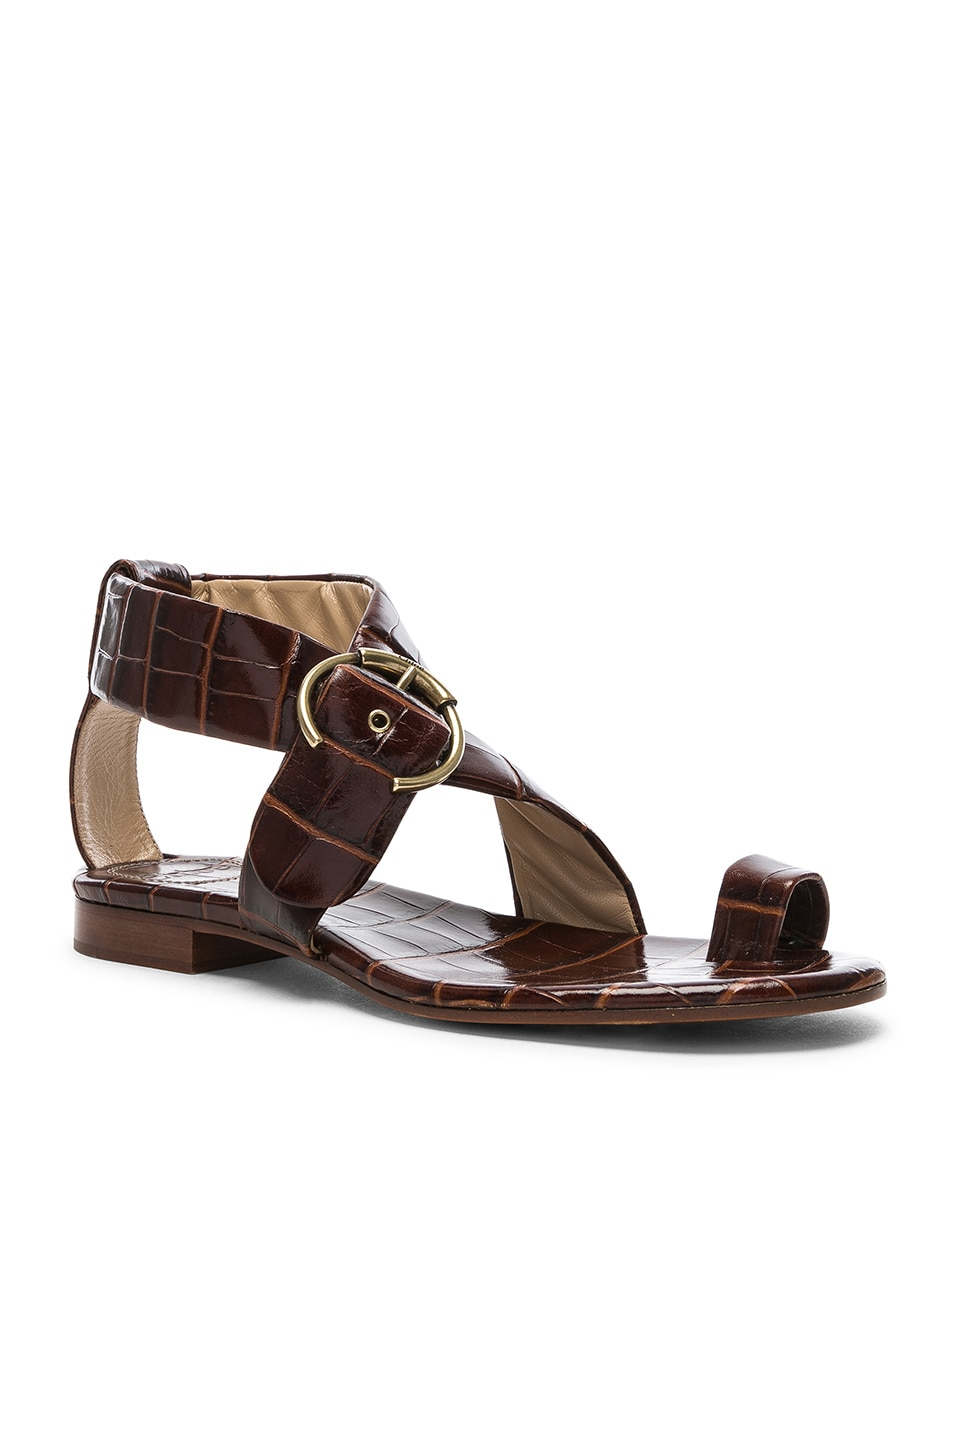 Image 2 of Chloe Two Strap Sandals in Hot Tan